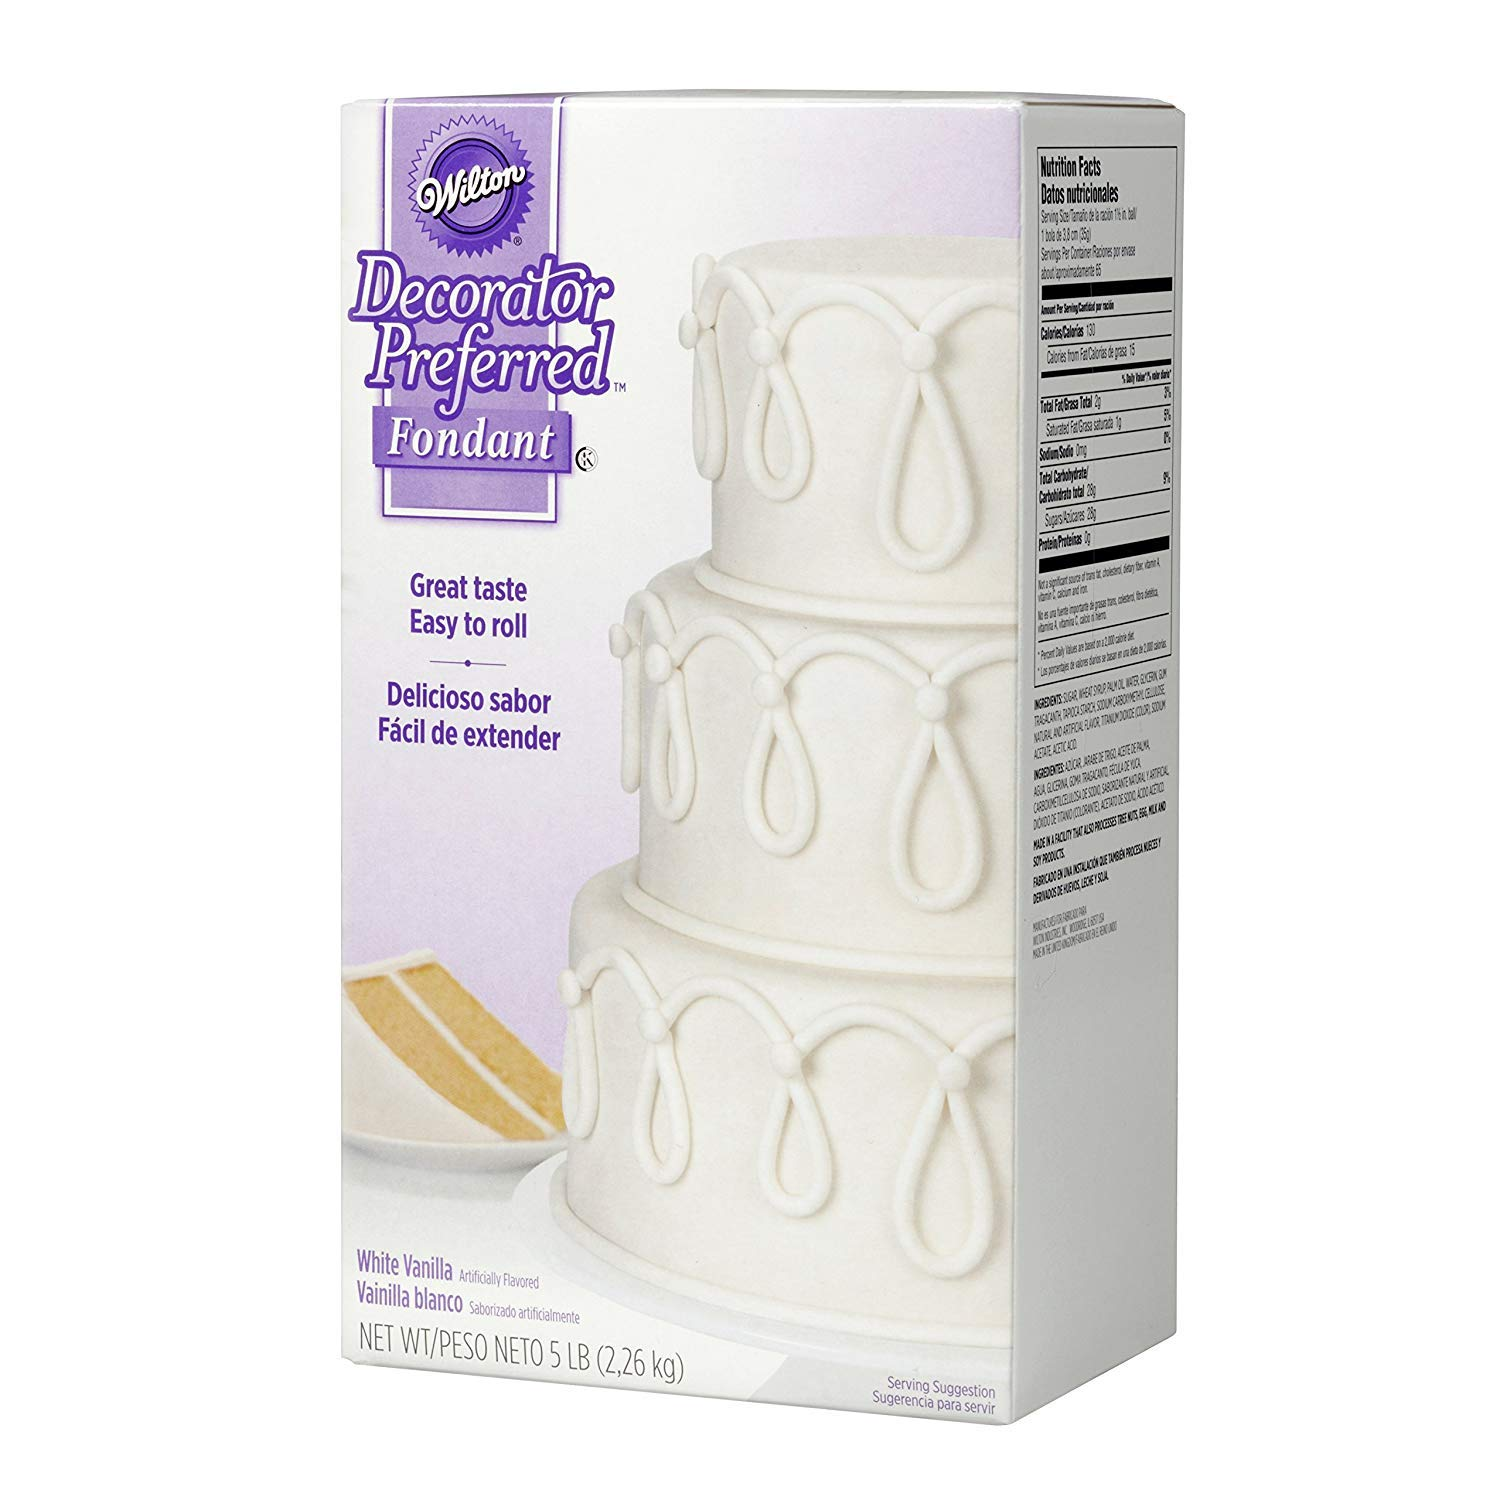 Wilton Decorator Preferred White Fondant, 5 lb 4Pack by Wilton (Image #8)